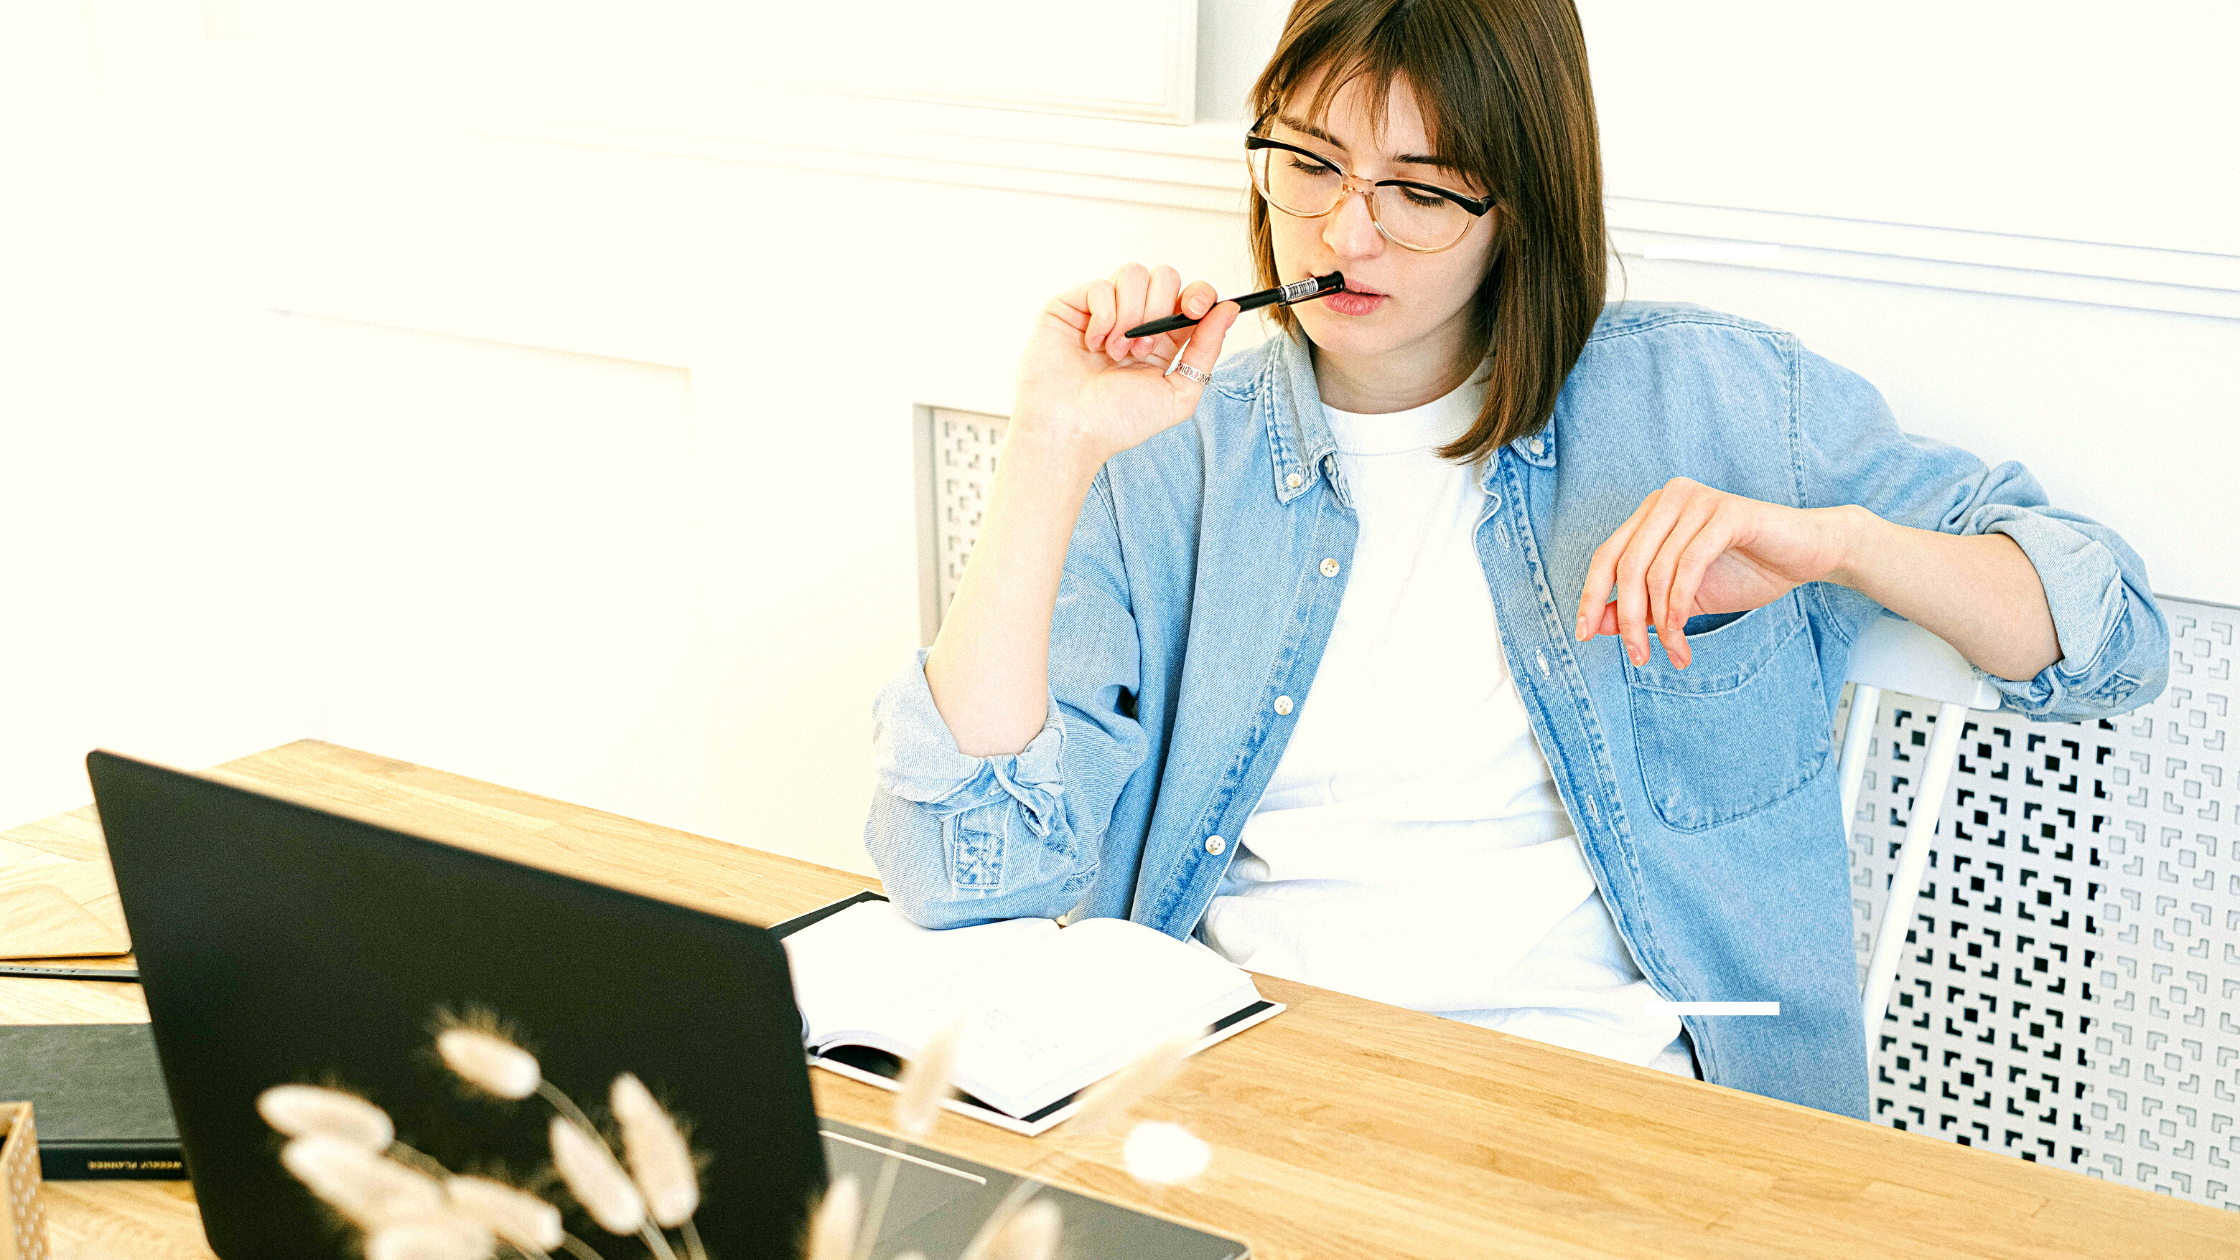 You are currently viewing Blogging Lessons; 5 Lessons For New Bloggers